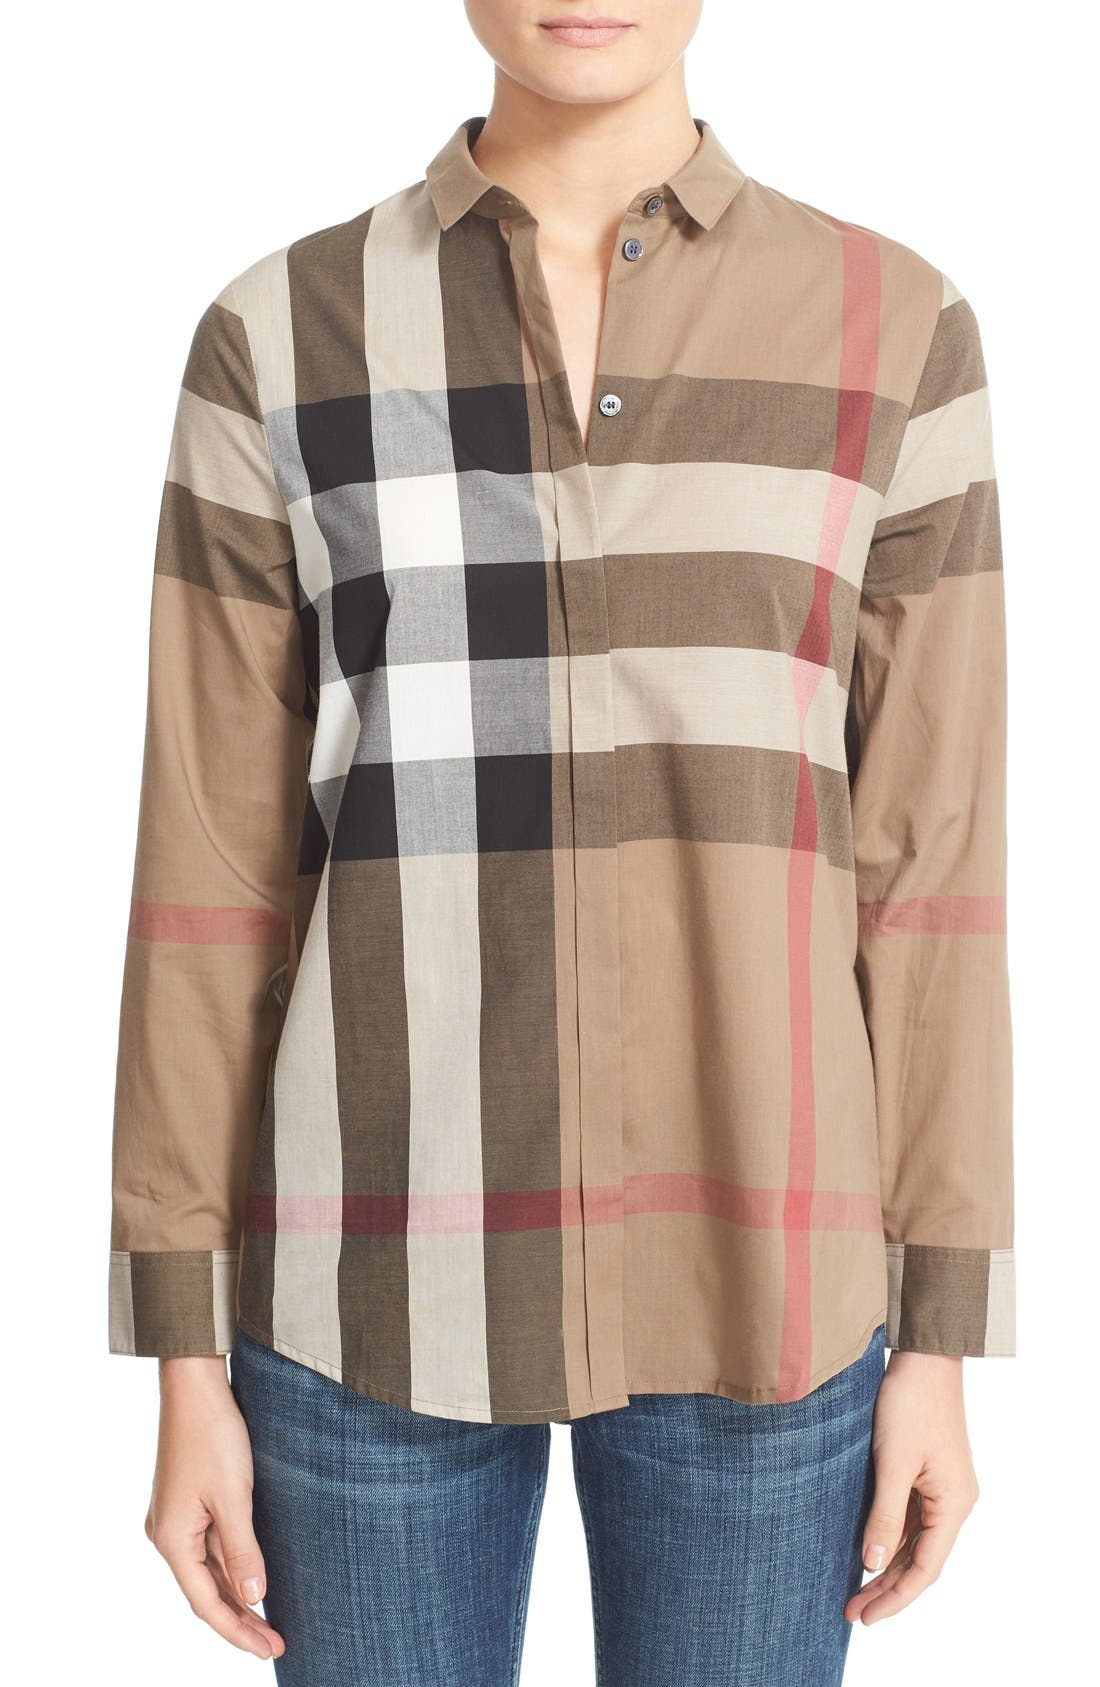 burberry his and hers shirts